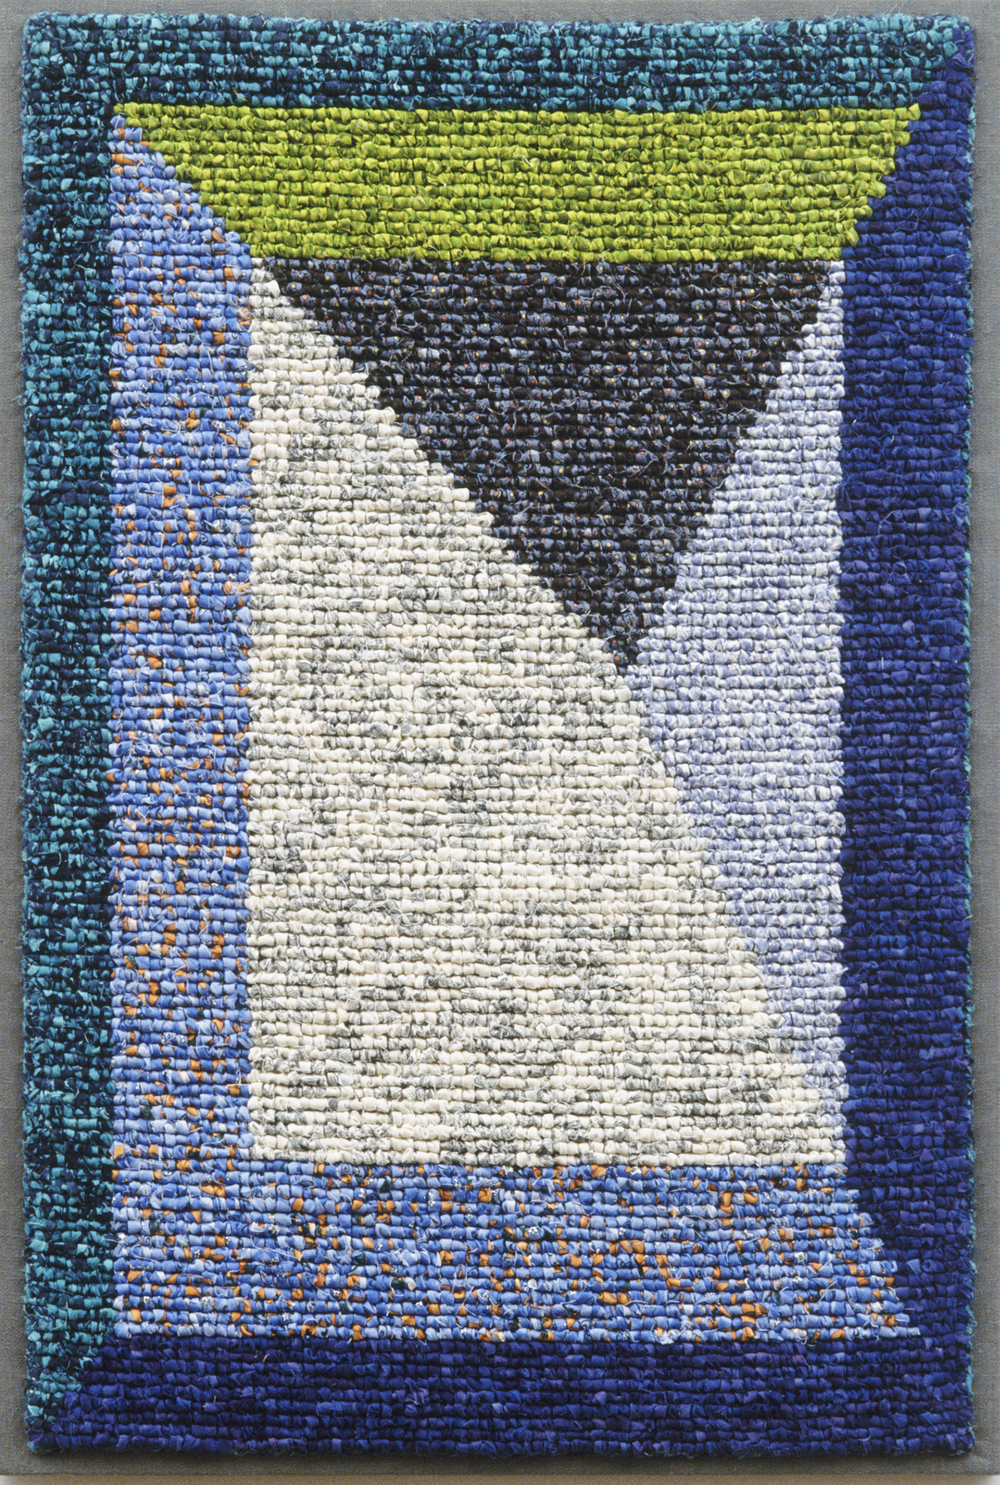 "1500-8. Vanishing Point 4, 31""x21"", hand hooked cottons & linens on mesh canvas, mounted on linen, canvas stretchers"